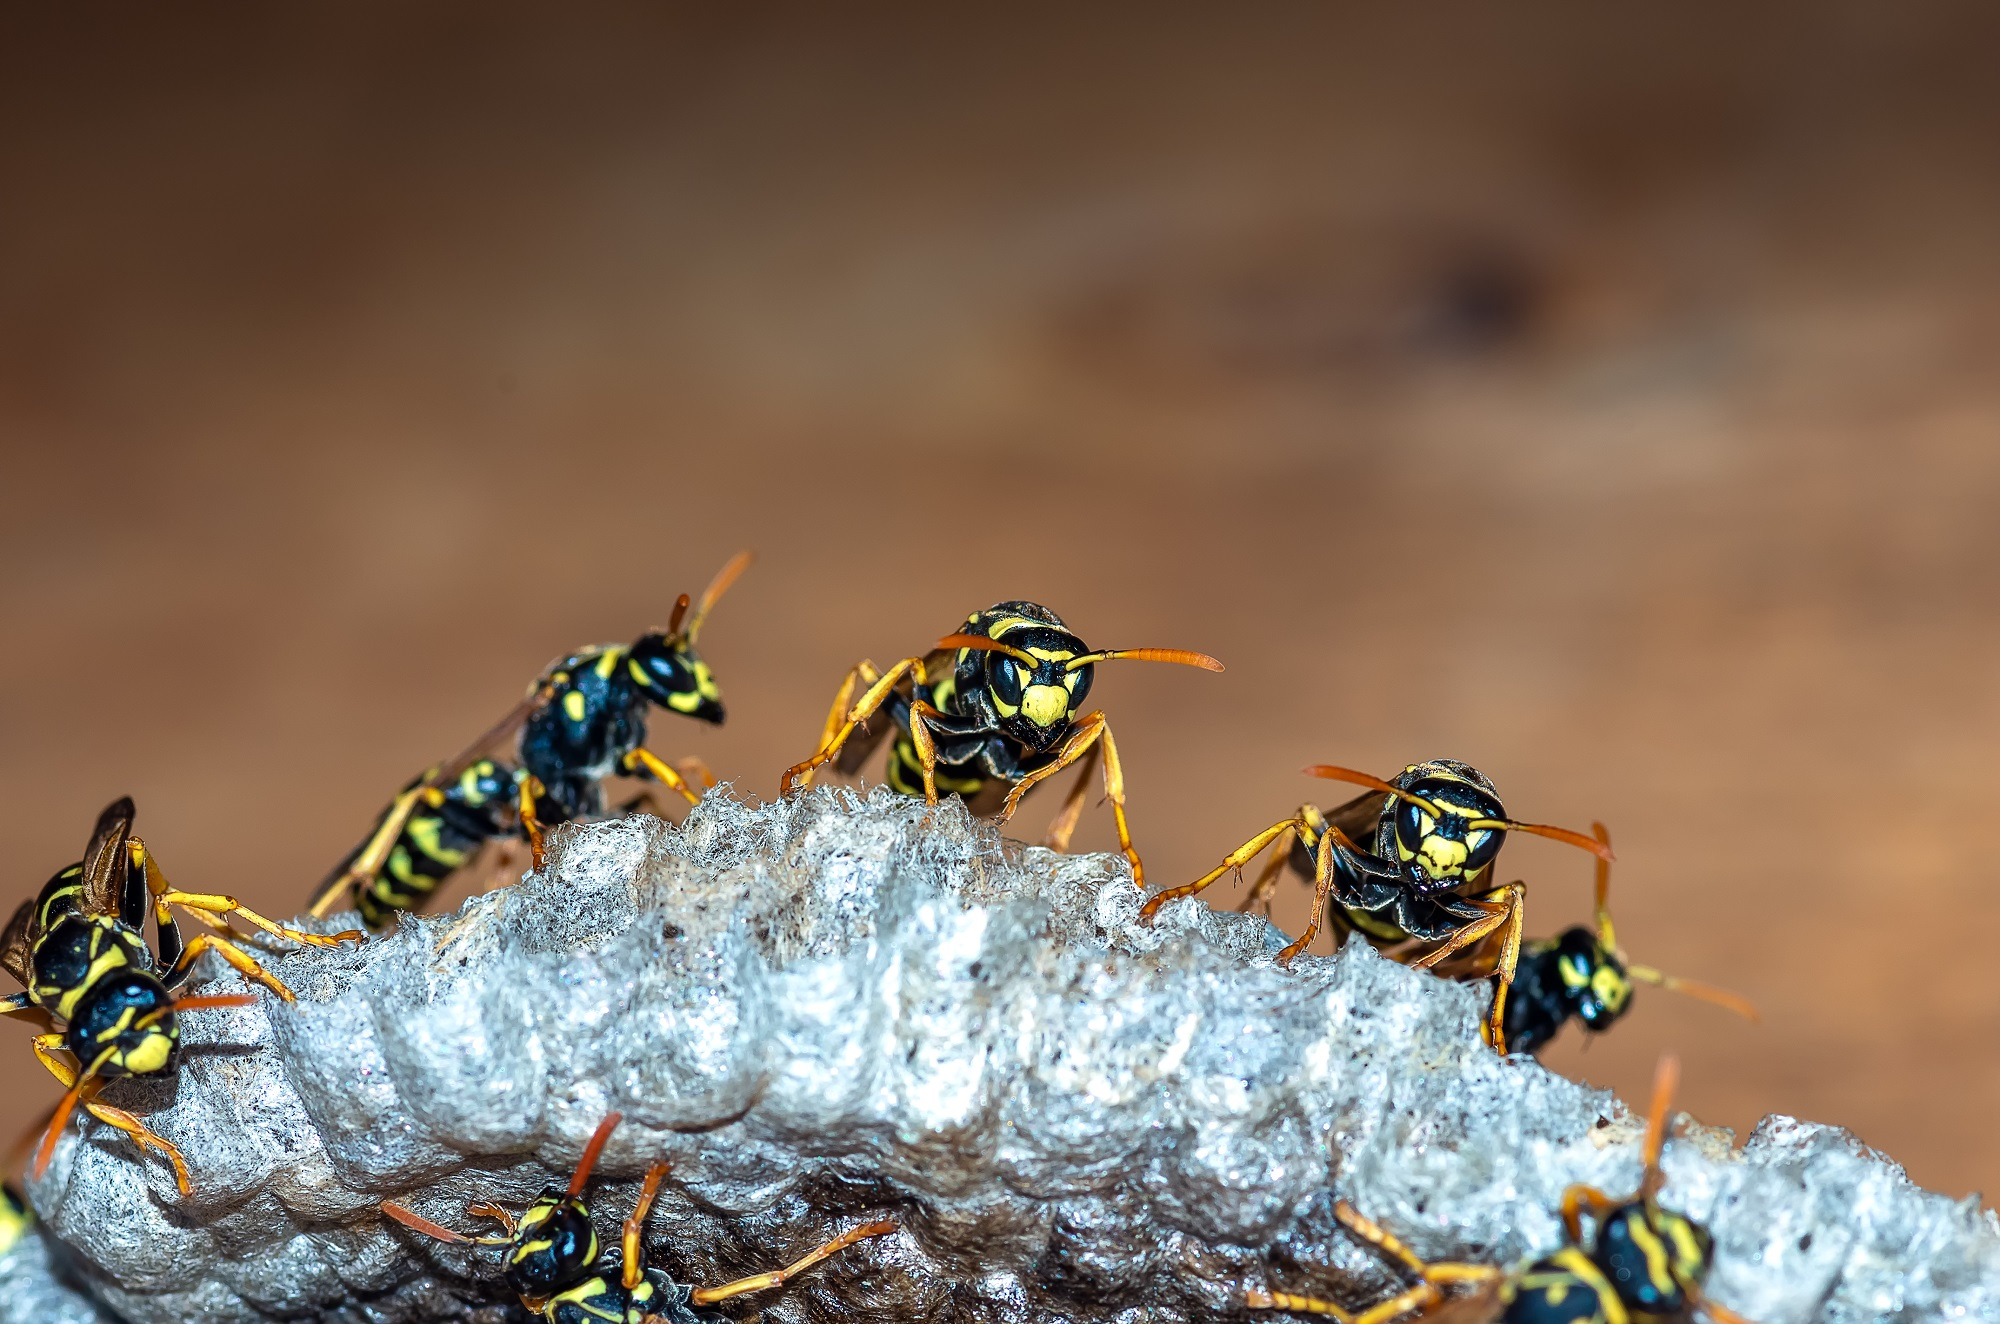 Wasp-and-Bee-Removal-In-Orange-County-Is-Not-An-Easy-Job